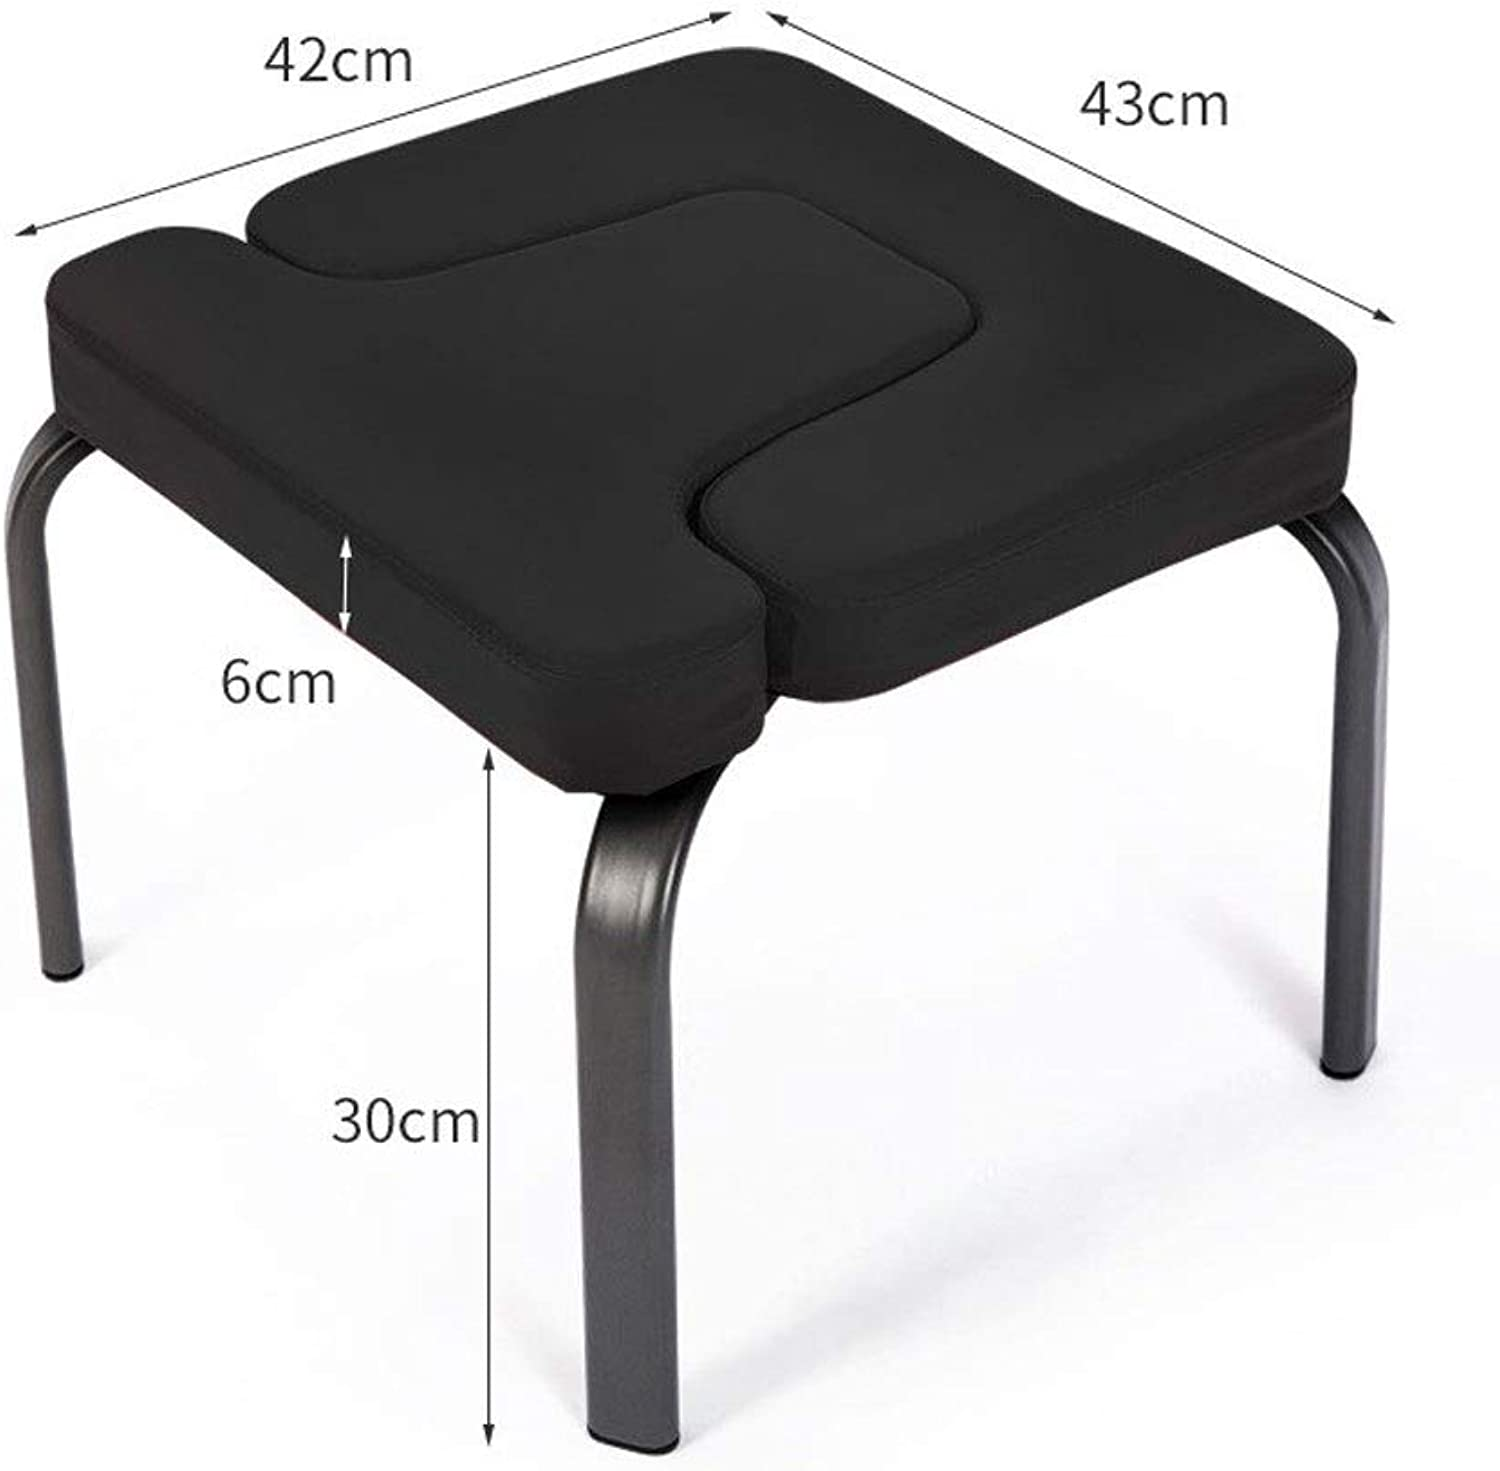 North cool Ingreened Chair, Yoga Auxiliary Chair, Home Fitness Ingreened Stool, Ingreened Auxiliary Stool (color   Black)